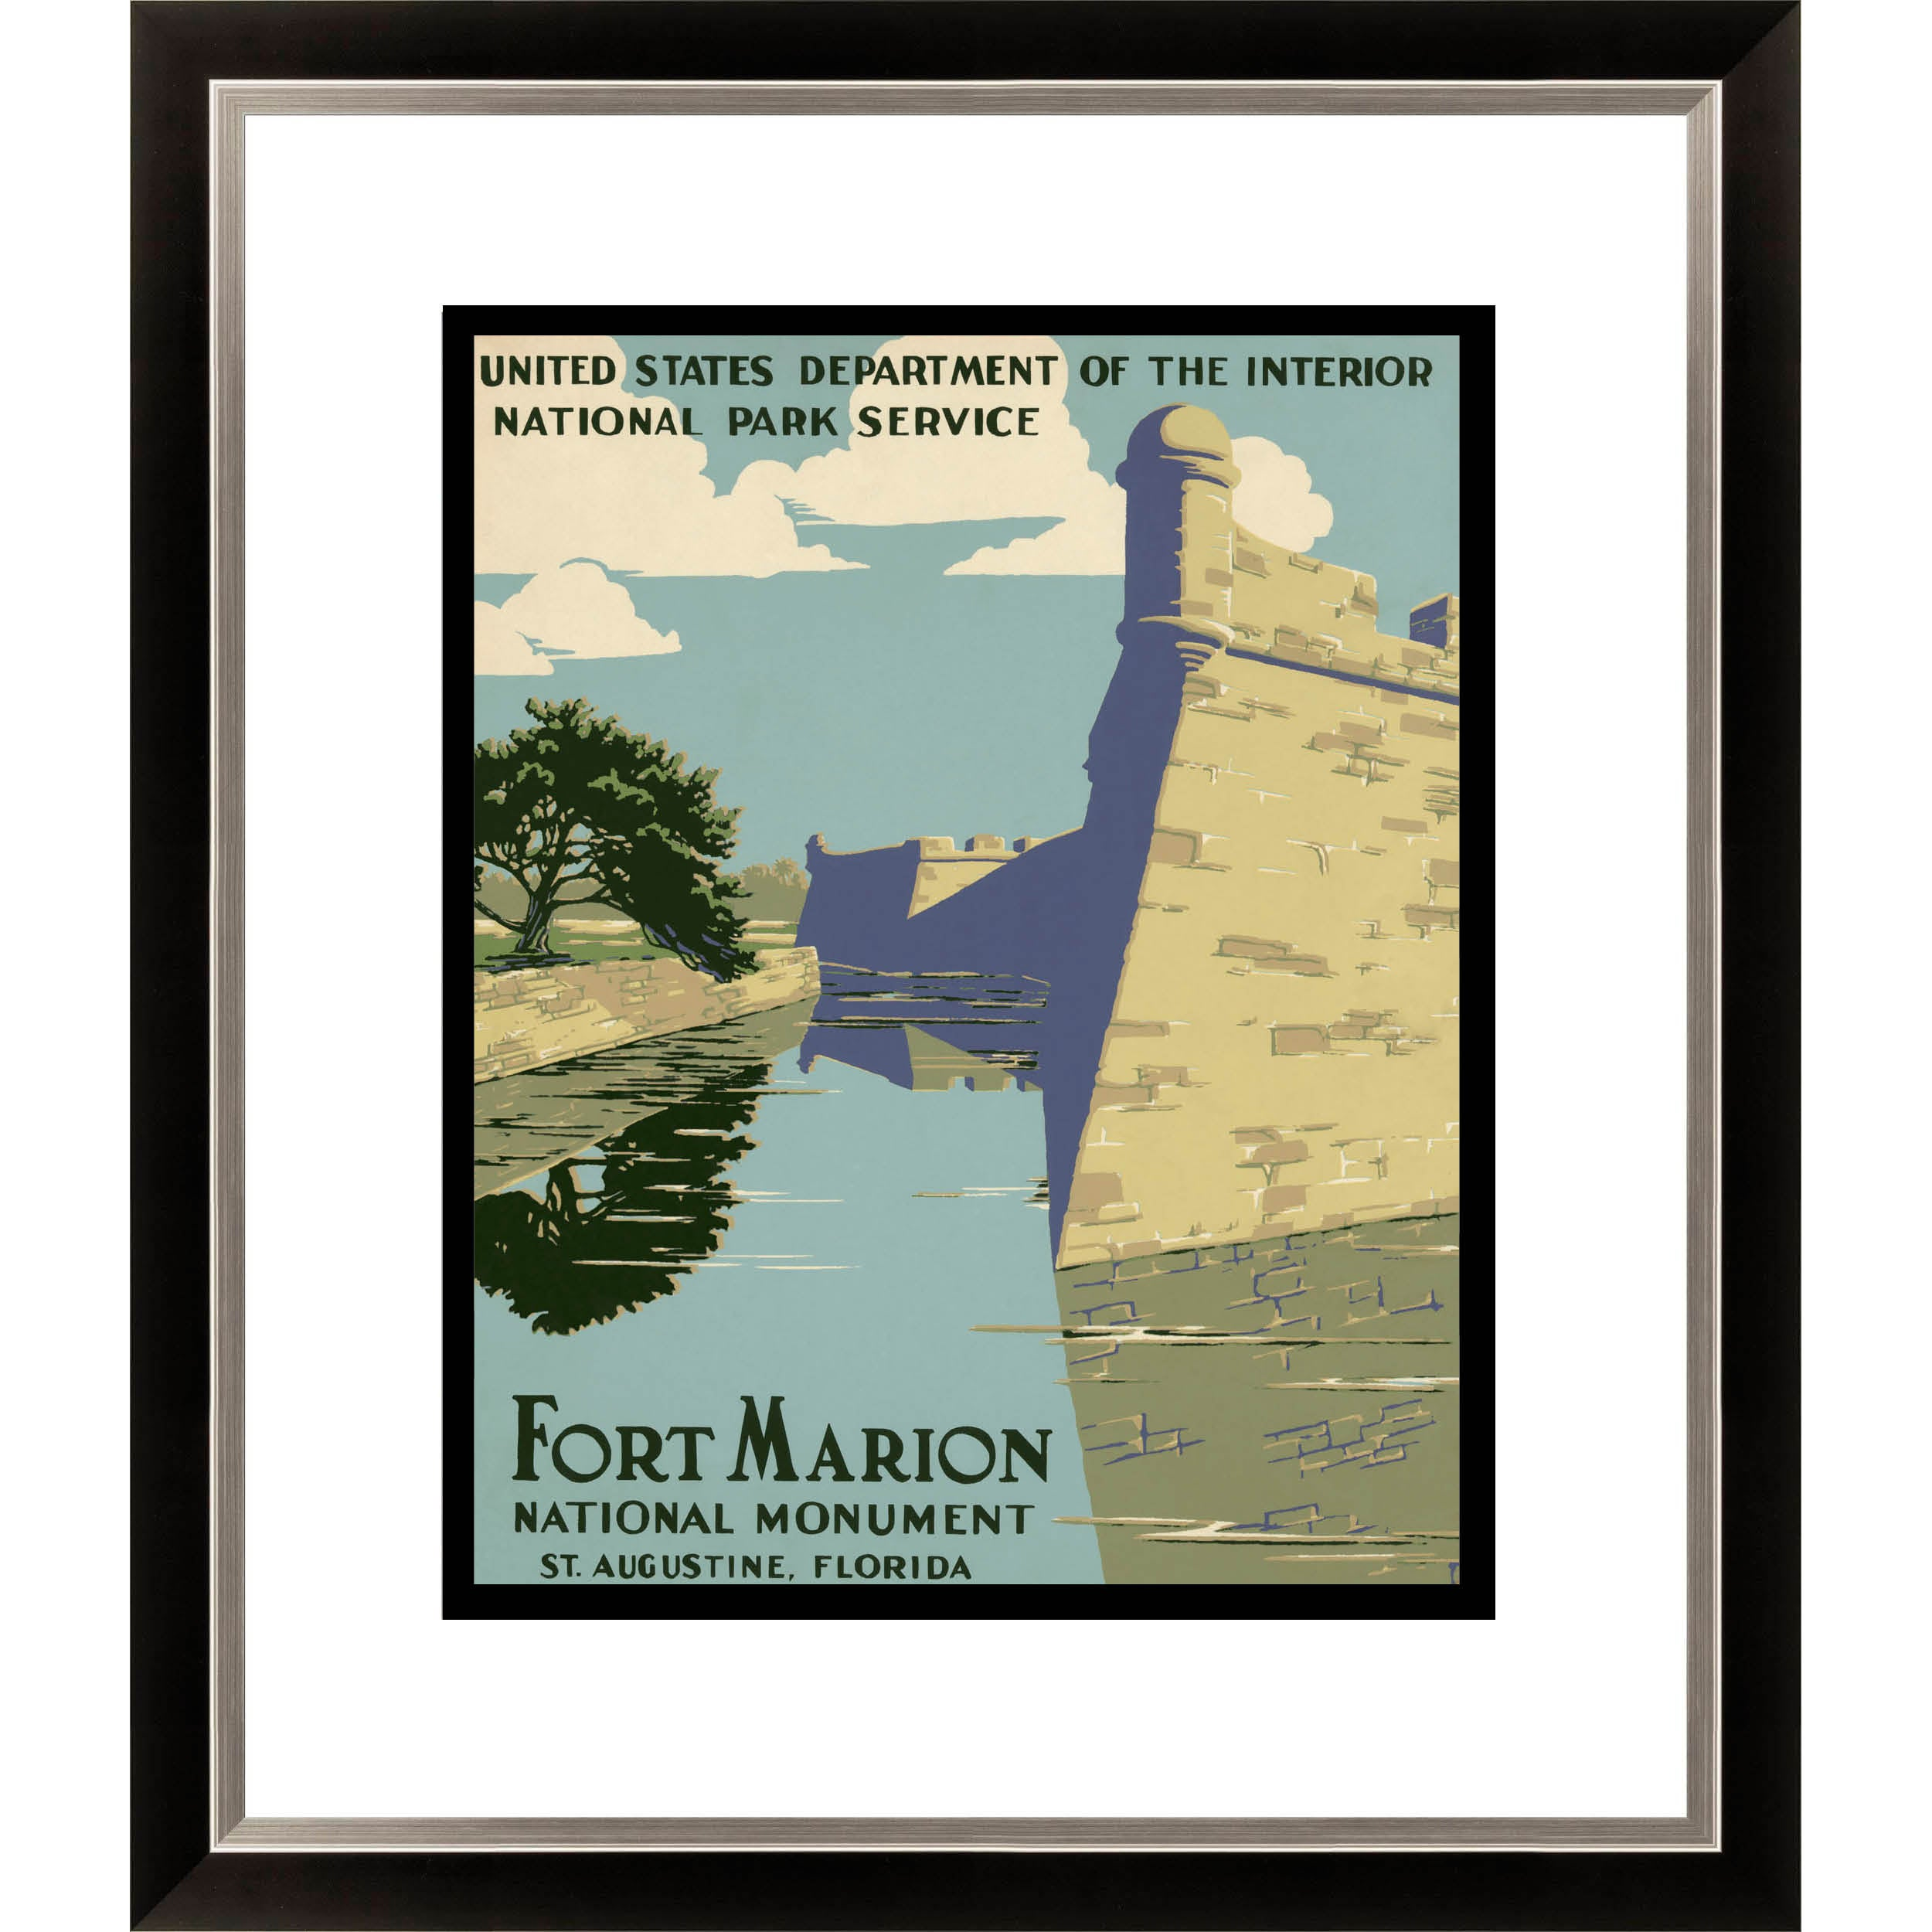 Gallery Direct Fort Marion National Monument St. Augustine Florida Framed Limited Edition Giclee Art